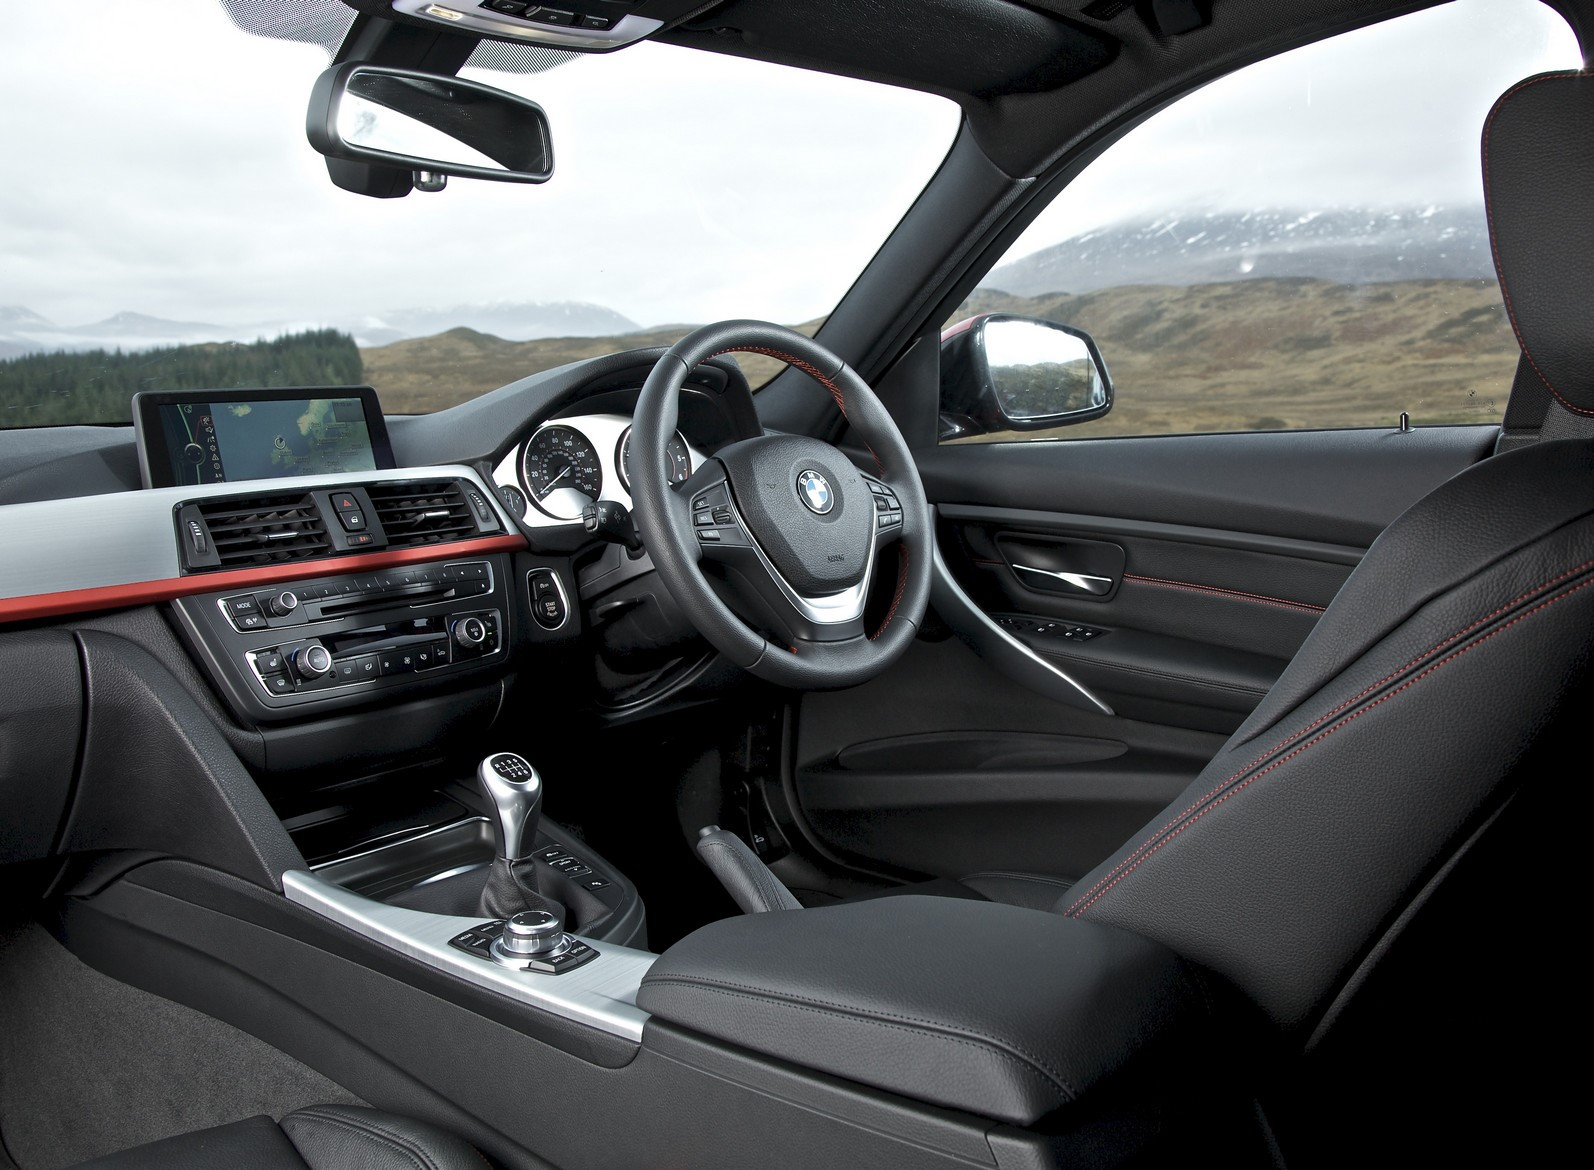 BMW 3 Series 2020 Interior Interior Cabin